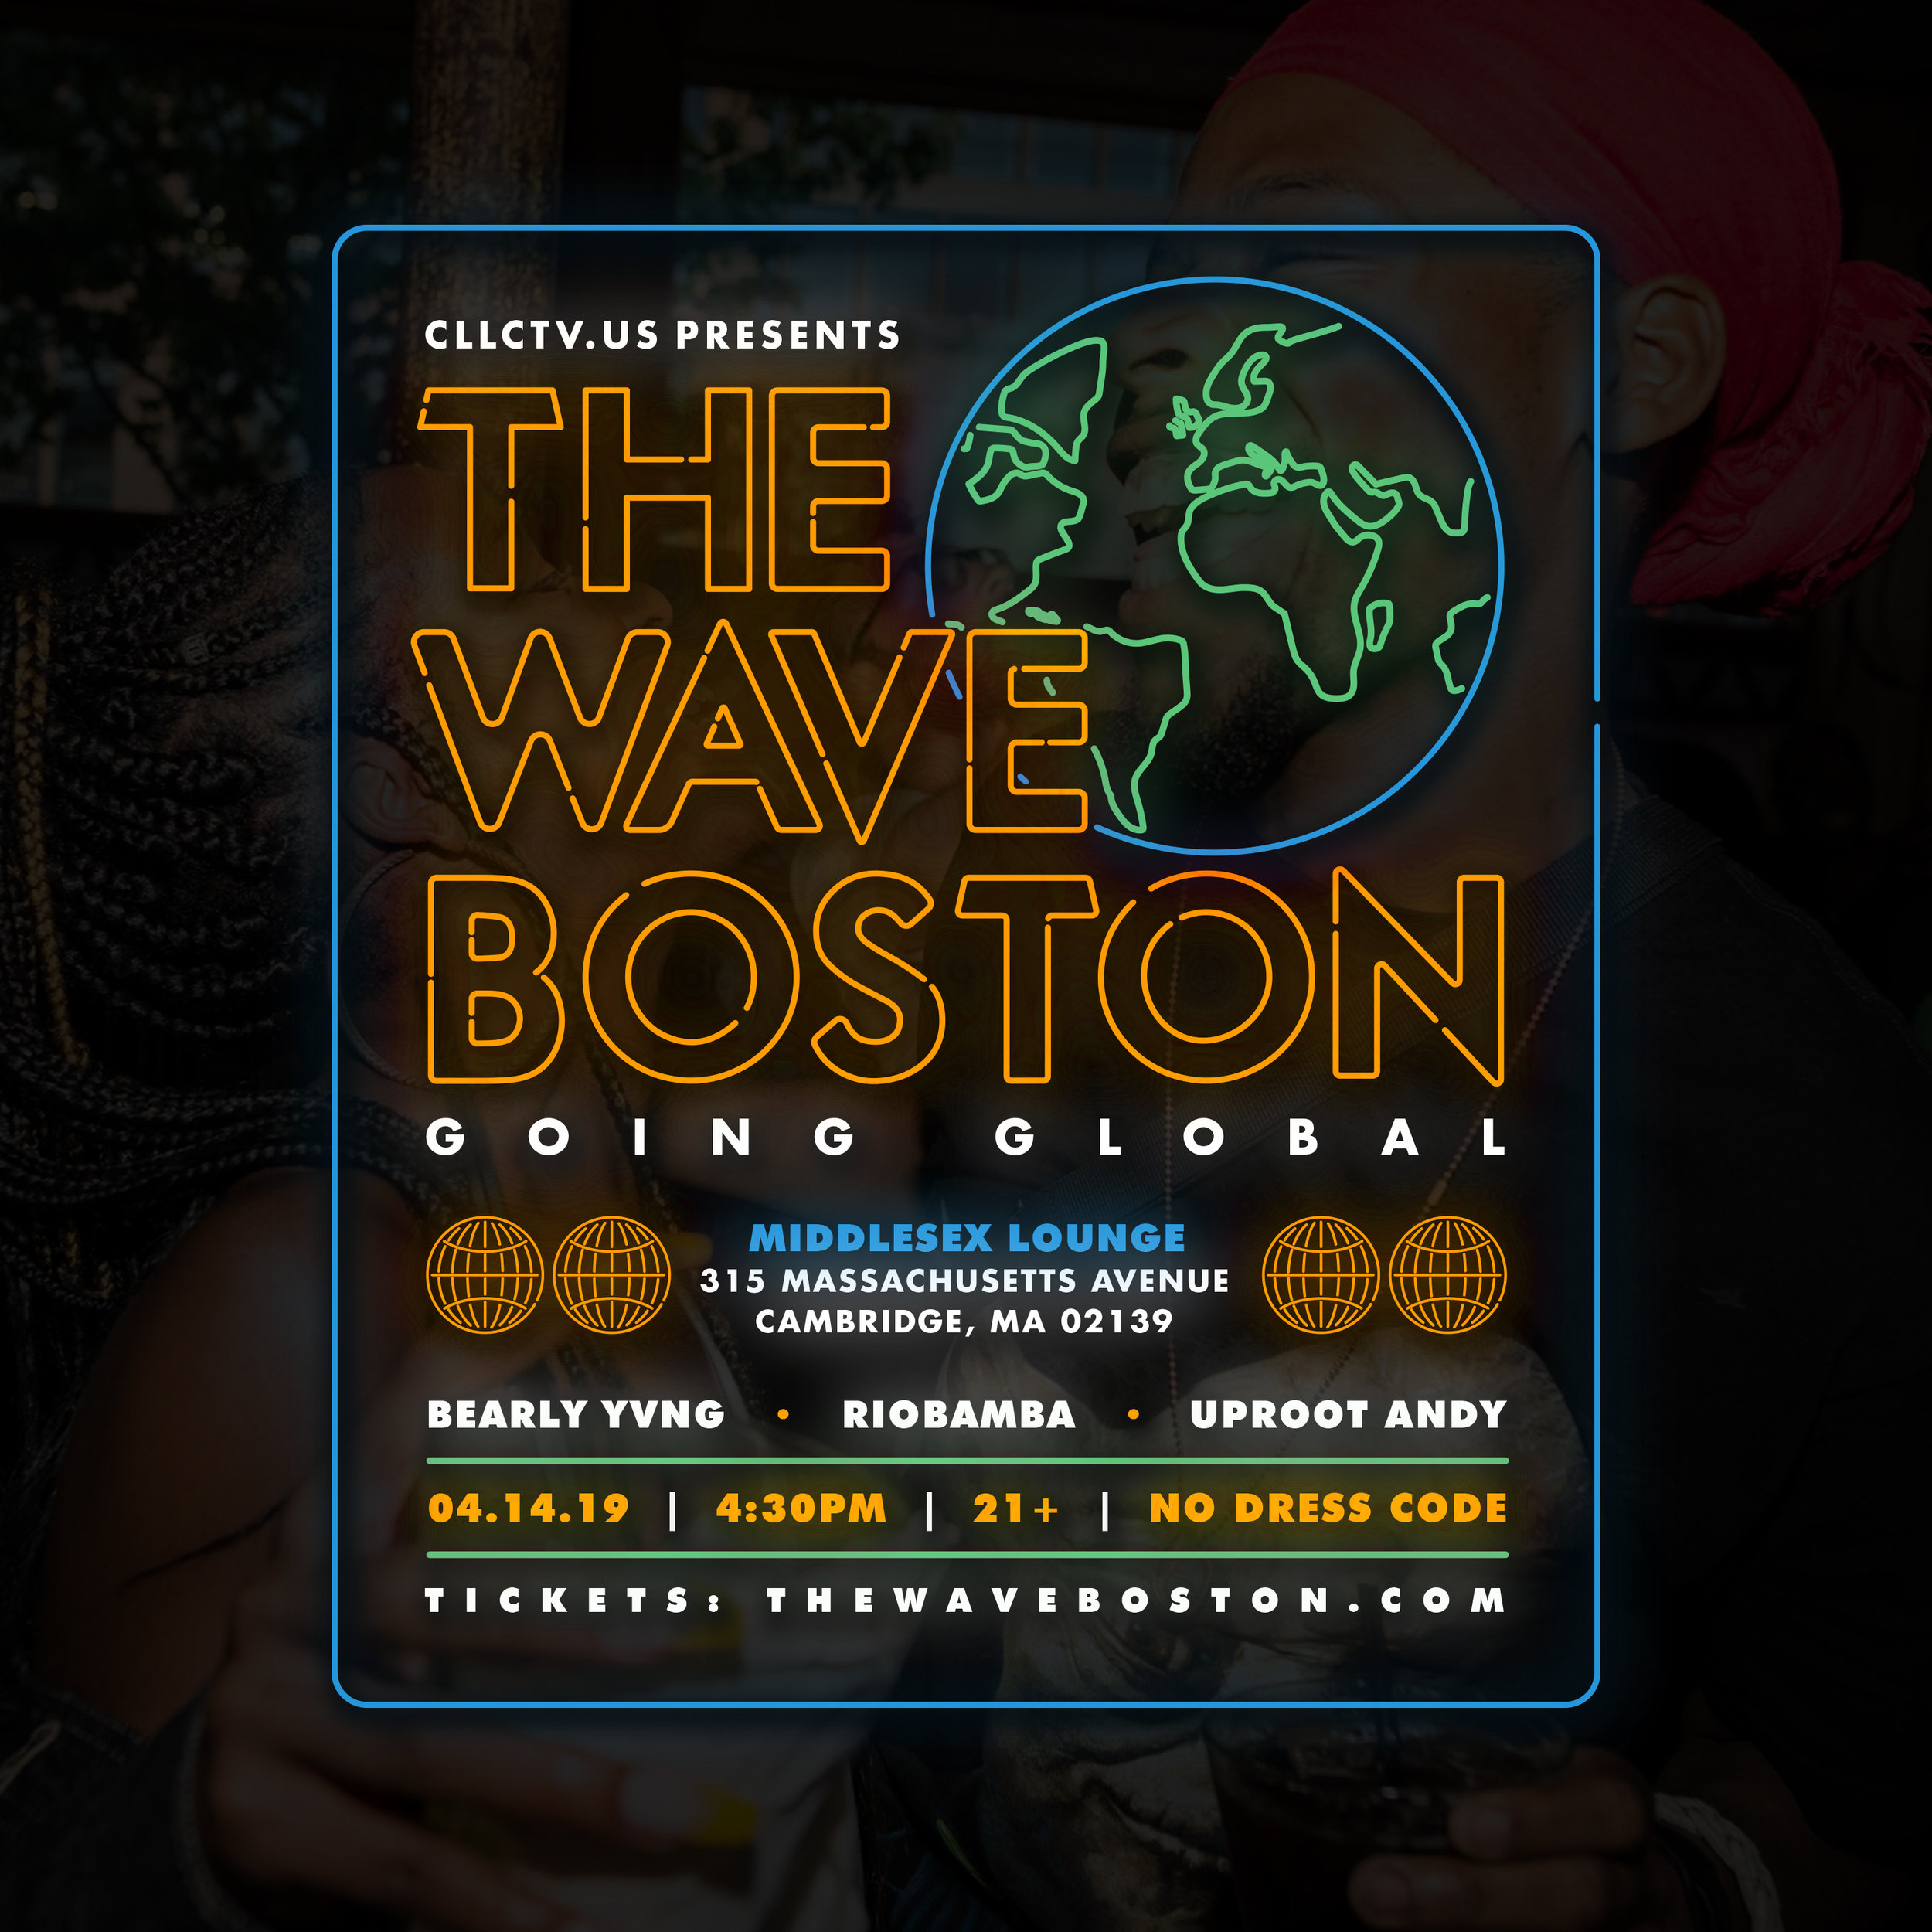 The Wave Boston returns to Middlesex Lounge on Sunday, April 14th. If we can't control the temperature outside, we'll do our best to heat it up inside. This month we'll be welcoming two DJs that are experts at bringing the tropical heat to make you dance. Uproot Andy will be making his debut at The Wave Boston. We'll also be welcoming back one of our favorite DJs, Riobamba, to rock another legendary set. They will be joined by the Bearly Yvng brothers. If you love to dance, you won't want to miss this one! Get your tickets now.